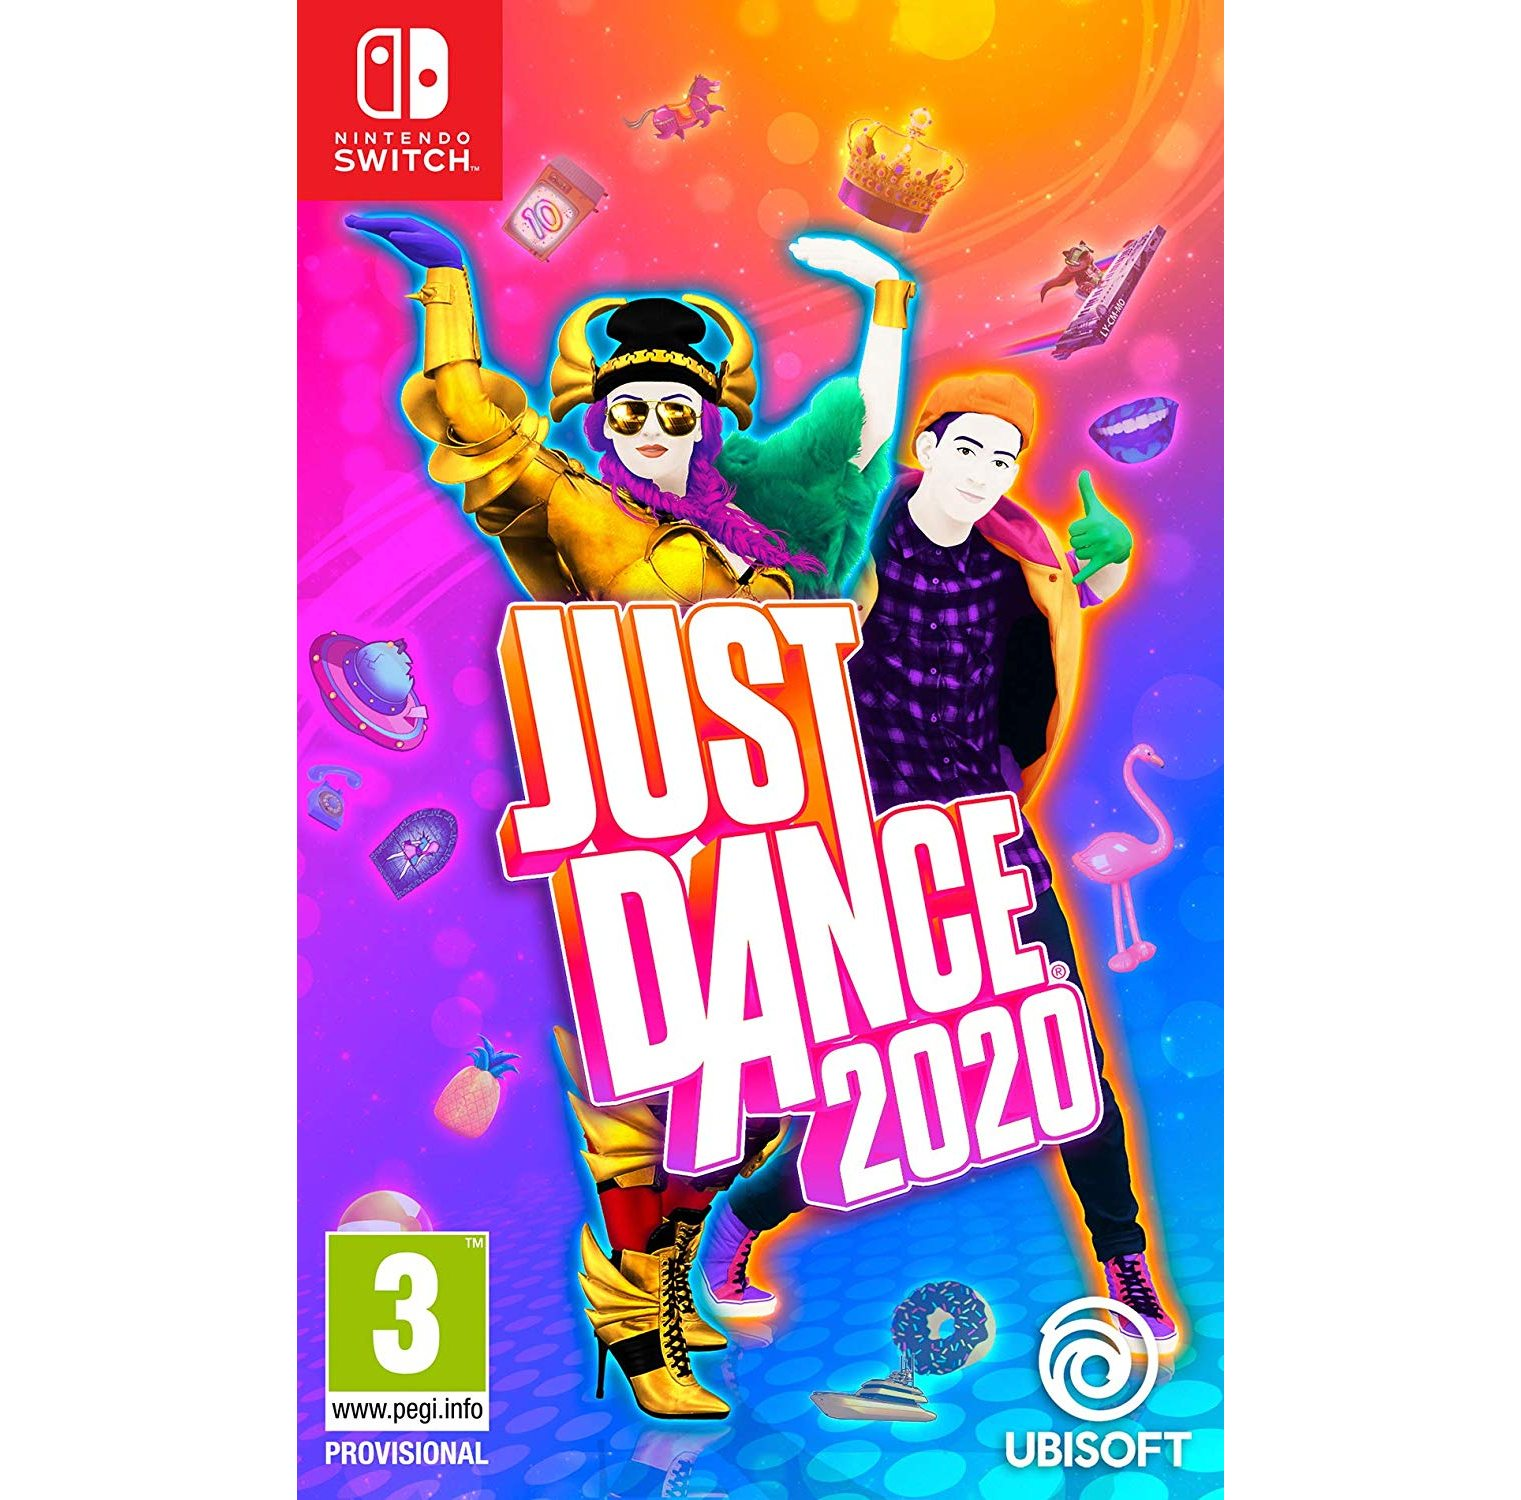 Nintendo Just Dance 2020 Nintendo